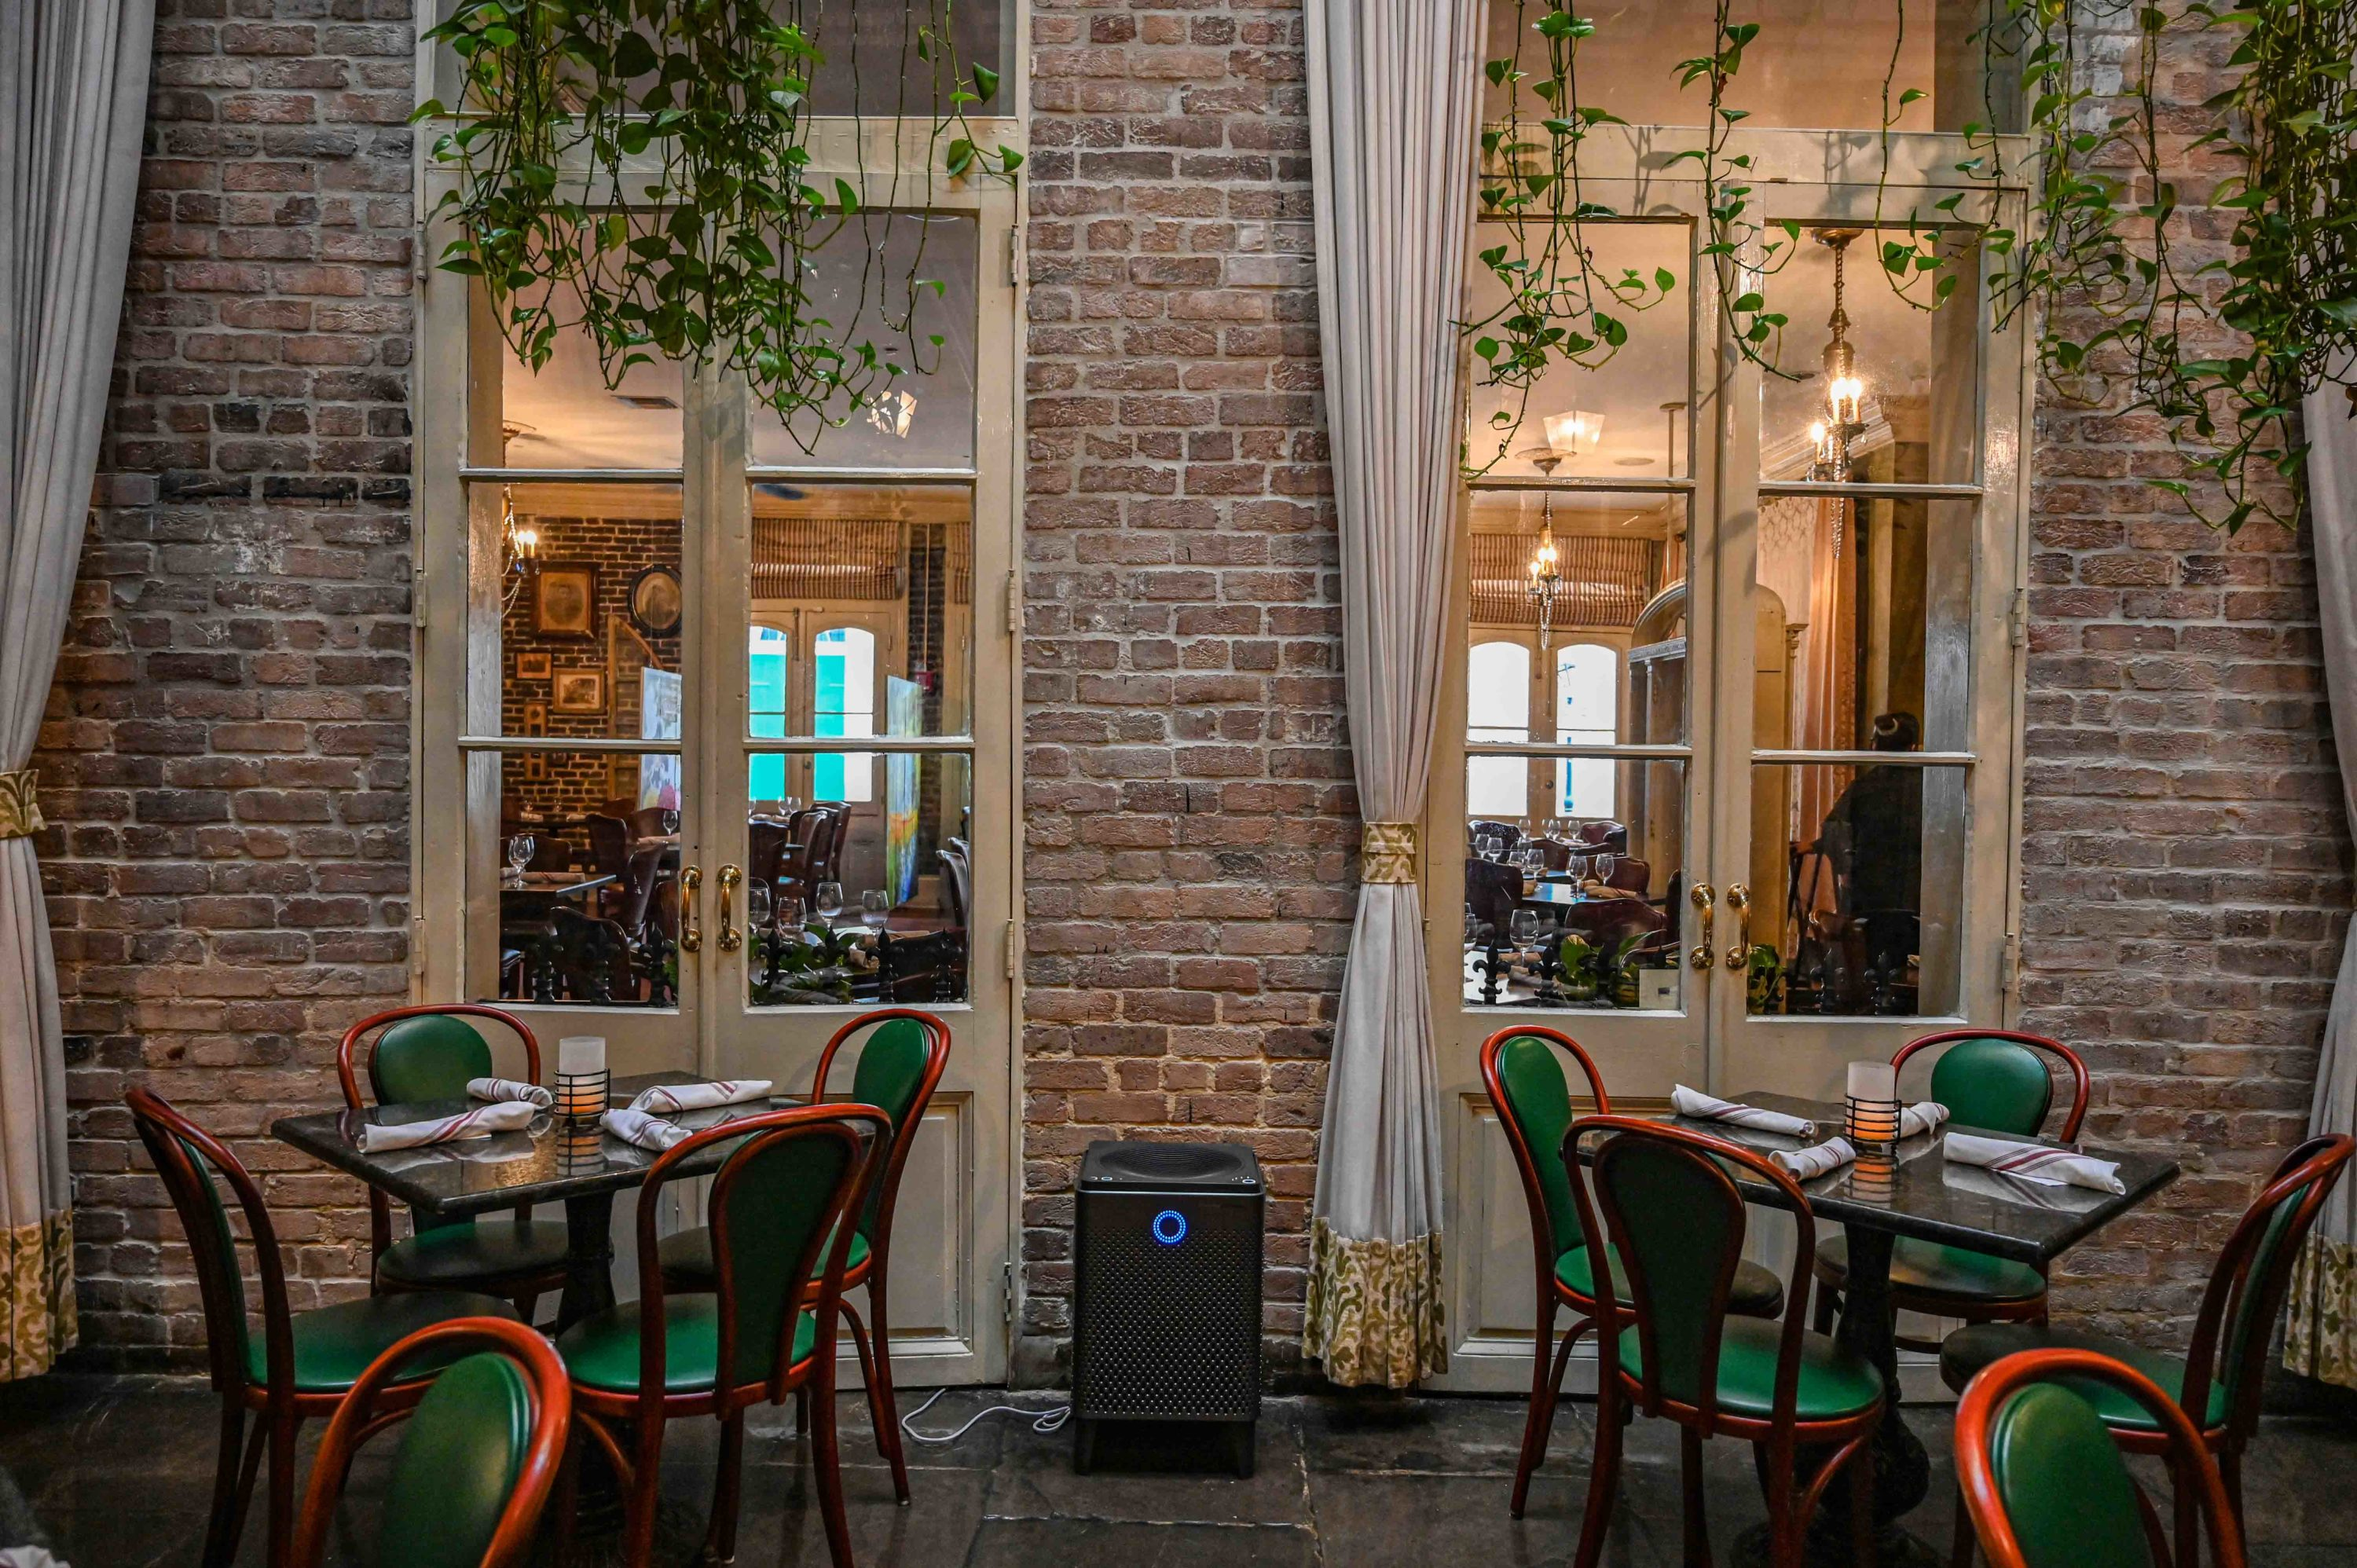 Air Purifier Located in our Courtyard